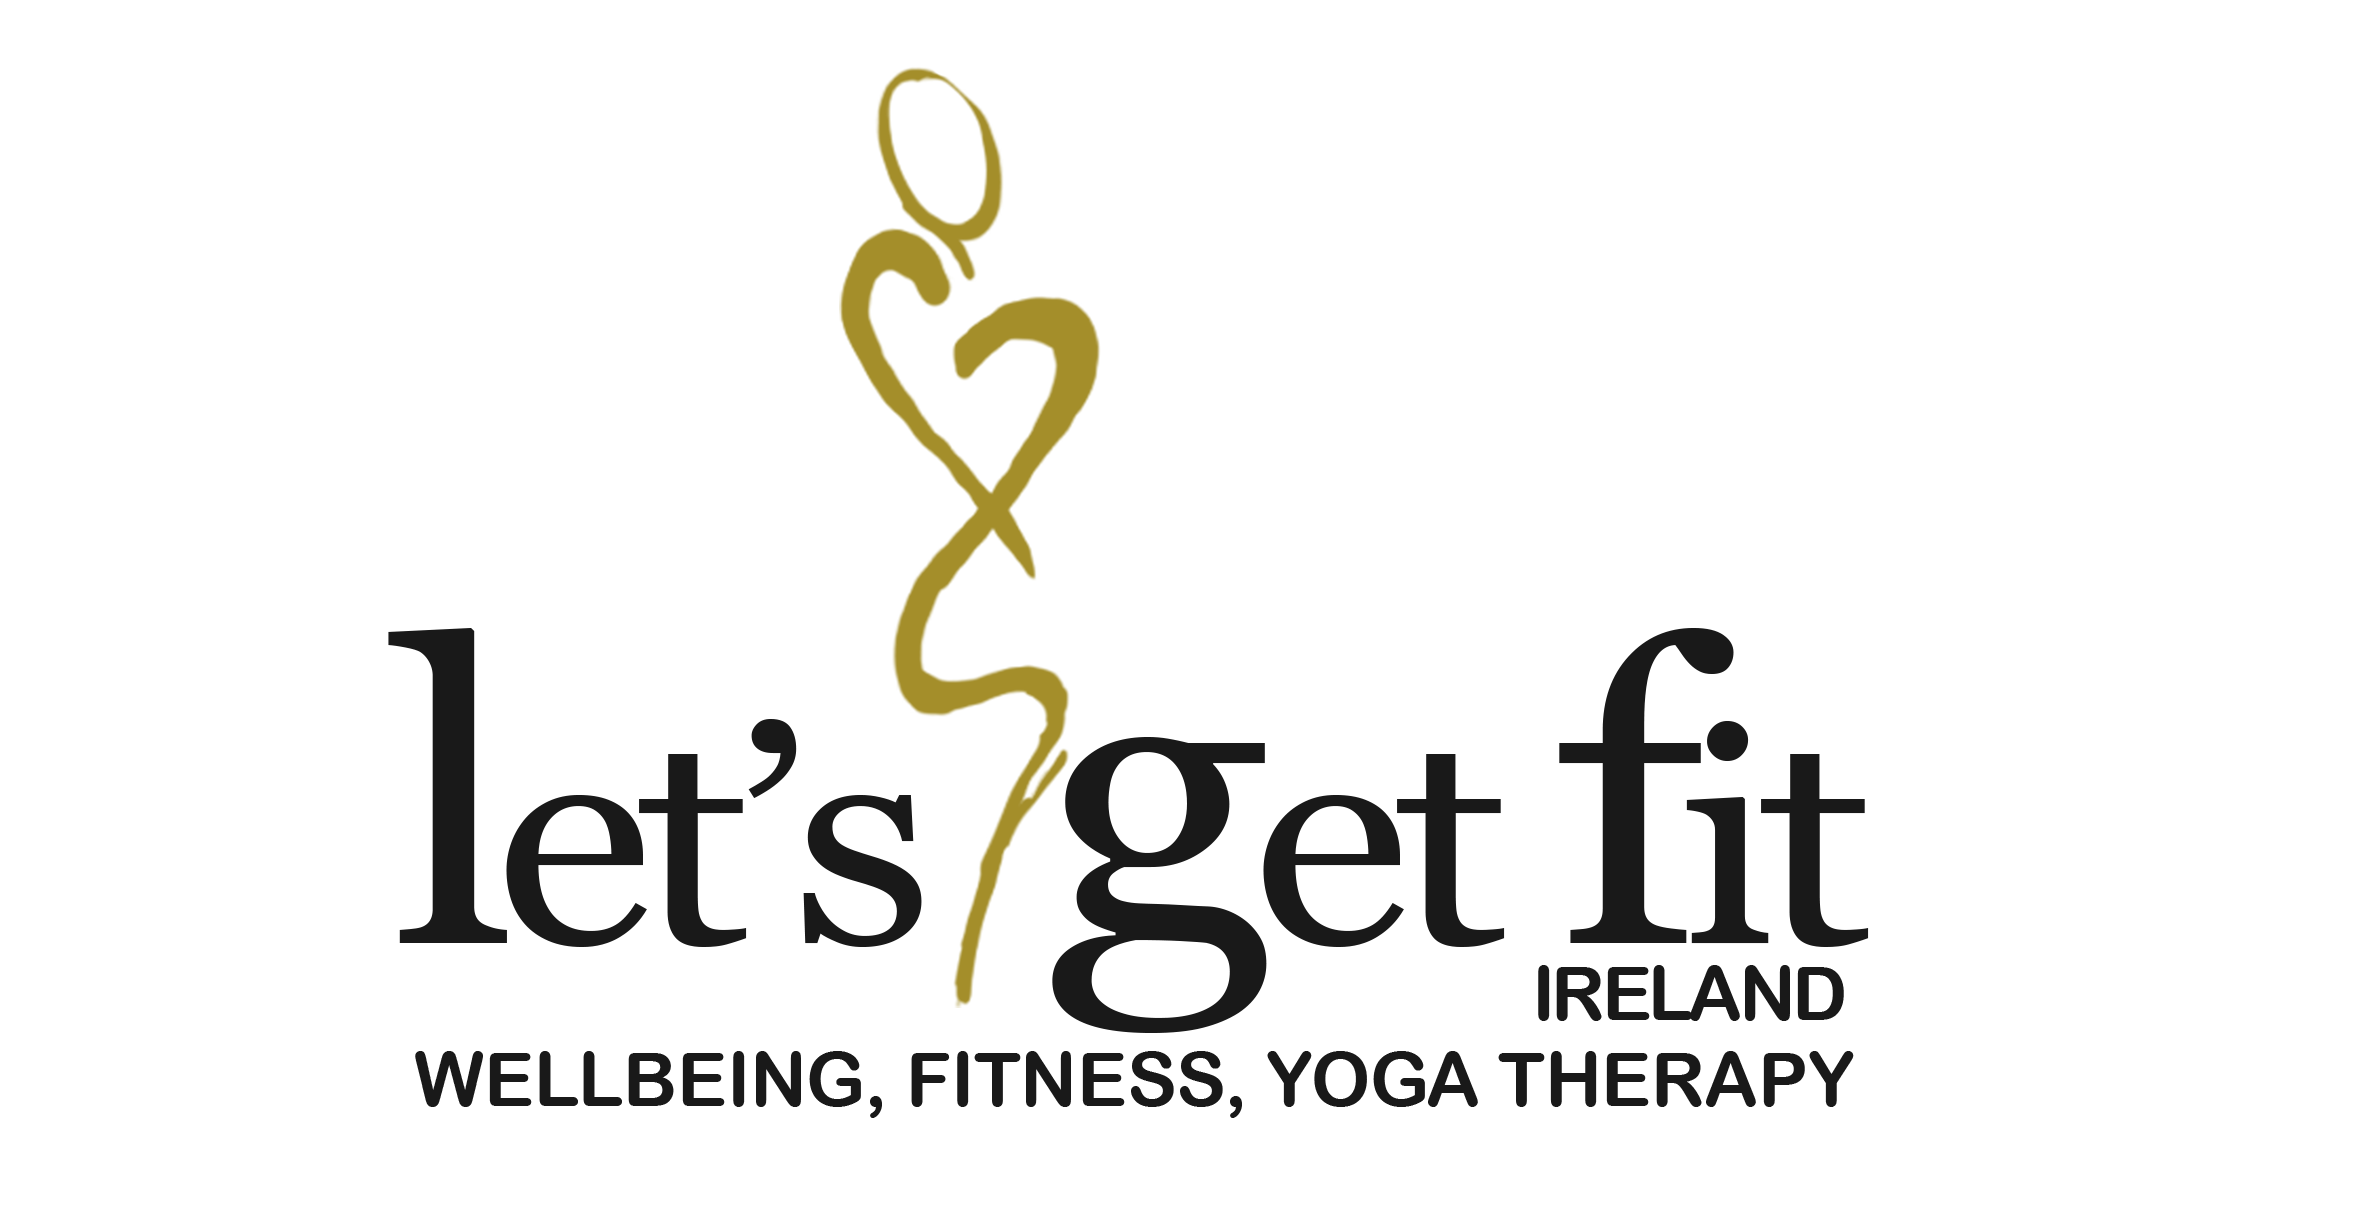 Lets Get Fit Ireland